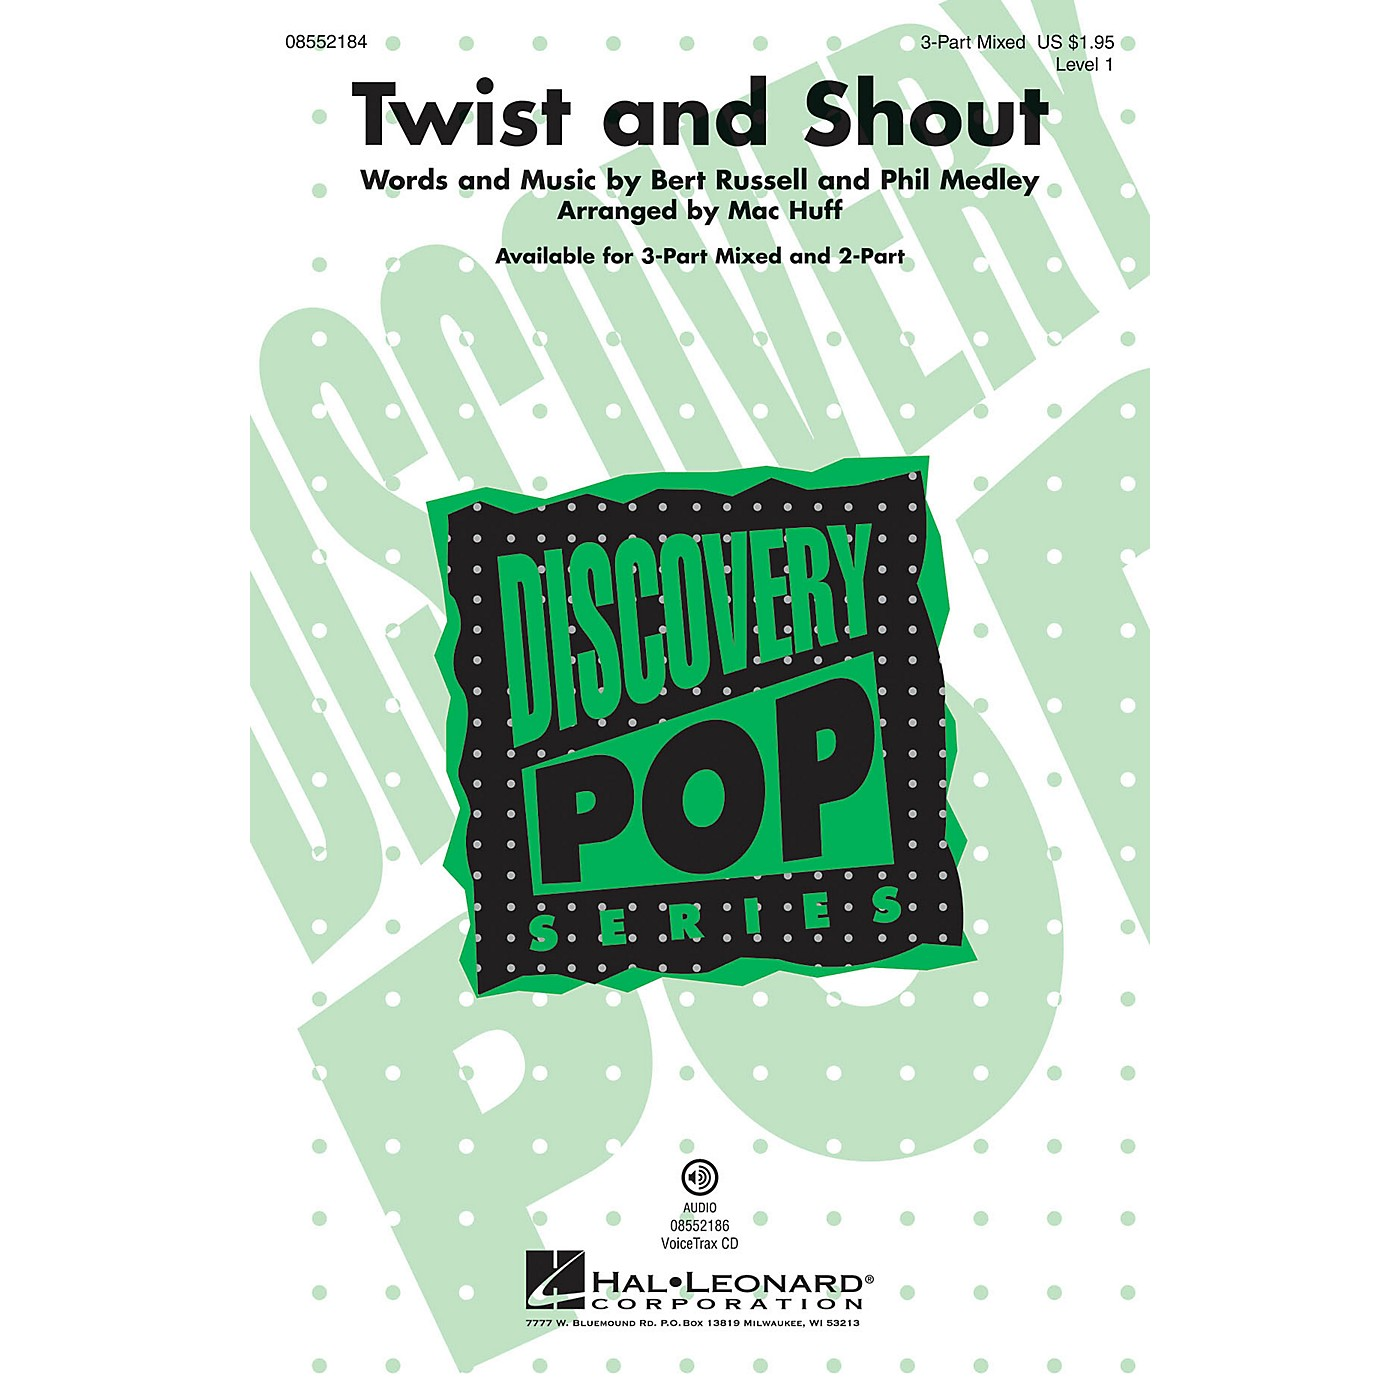 Hal Leonard Twist and Shout (Discovery Level 1) 2-Part Arranged by Mac Huff thumbnail